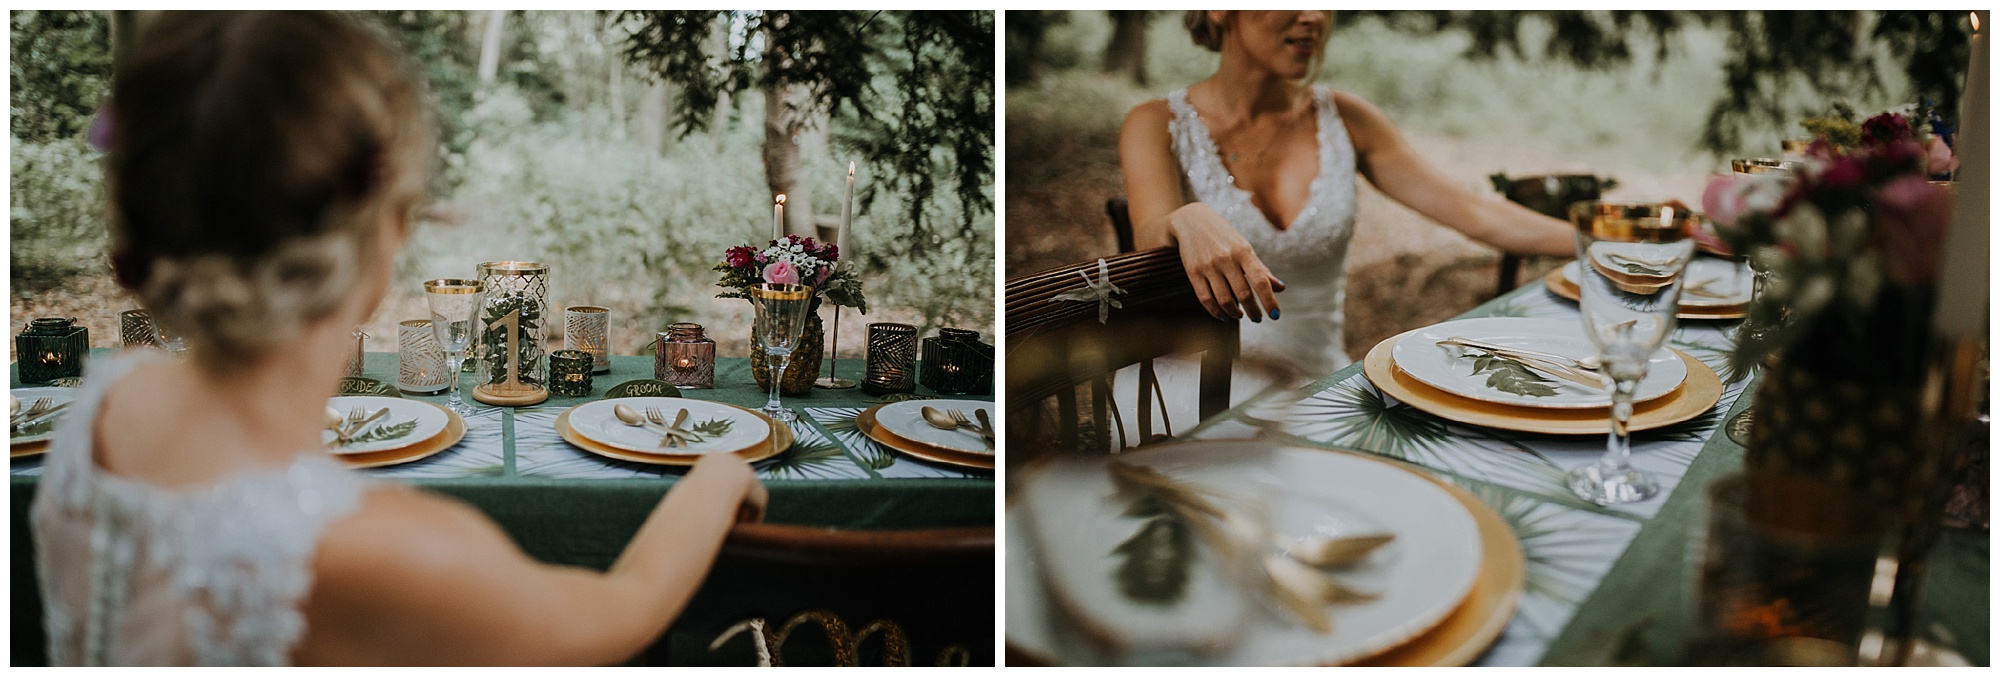 a bride sits at the table